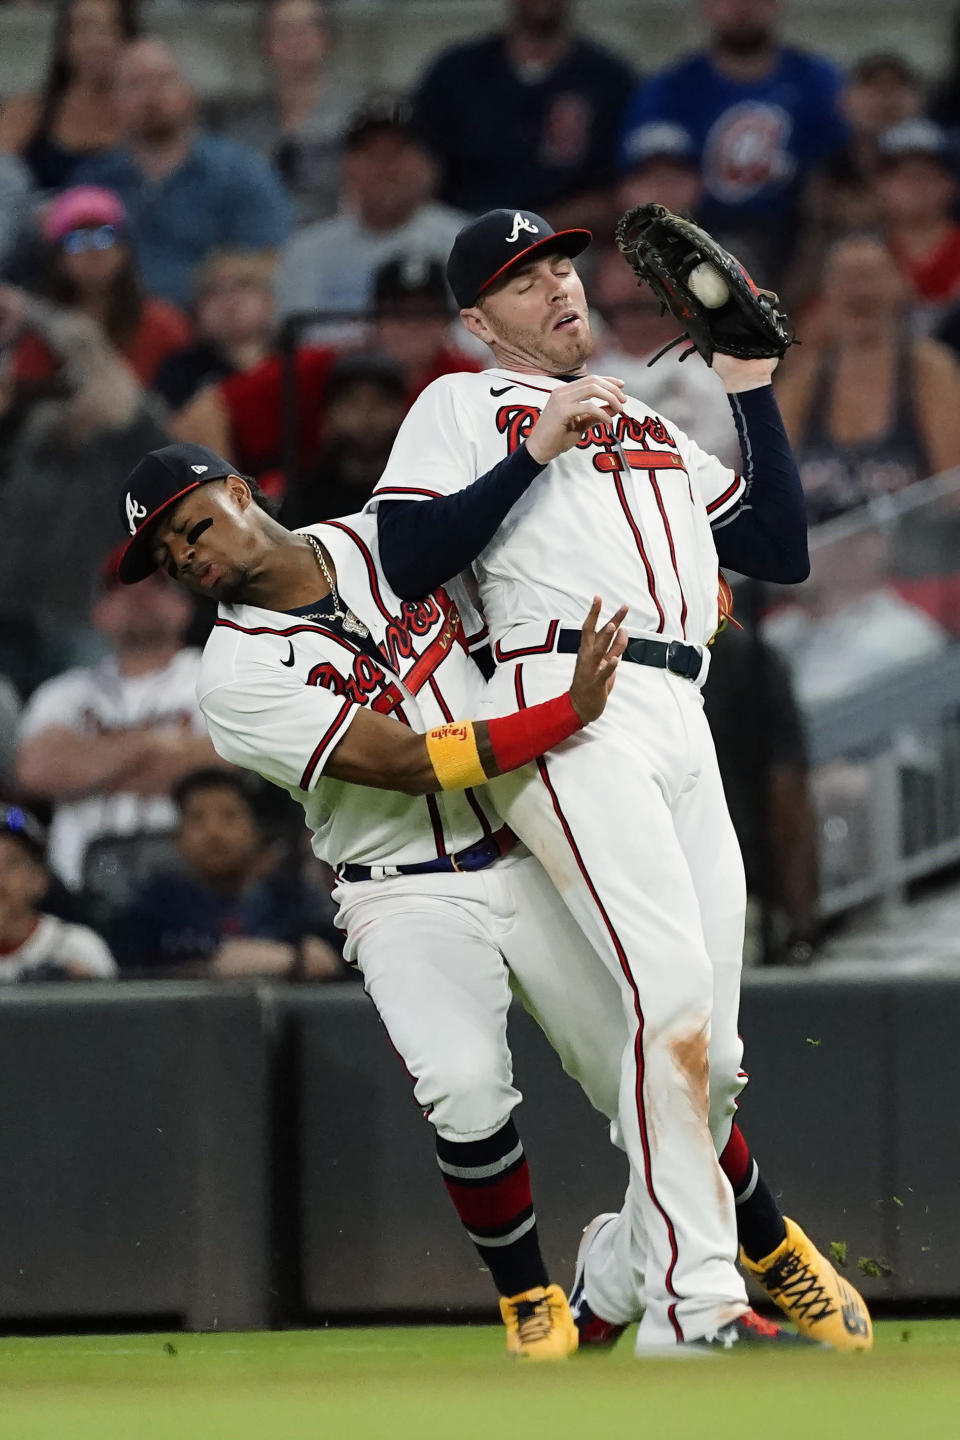 Atlanta Braves first baseman Freddie Freeman, right, collides with right fielder Ronald Acuna Jr. as he catches a fly ball from Boston Red Sox's Hunter Renfroe during the seventh inning of a baseball game Wednesday, June 16, 2021, in Atlanta. (AP Photo/John Bazemore)